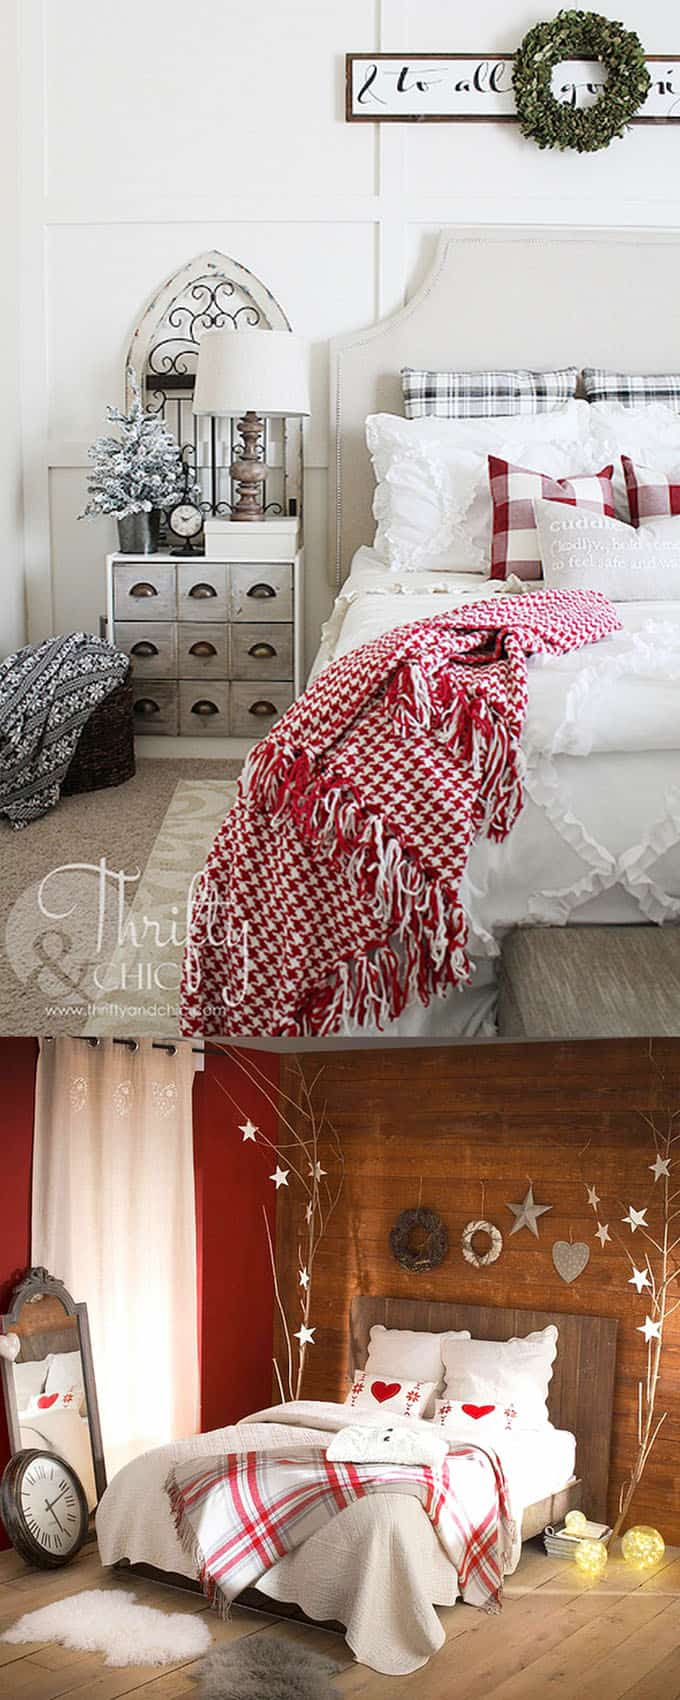 100 favorite christmas decorating ideas every room apieceofrainbow 9 - 100+ Favorite Christmas Decorating Ideas For Every Room in Your Home : Part 2